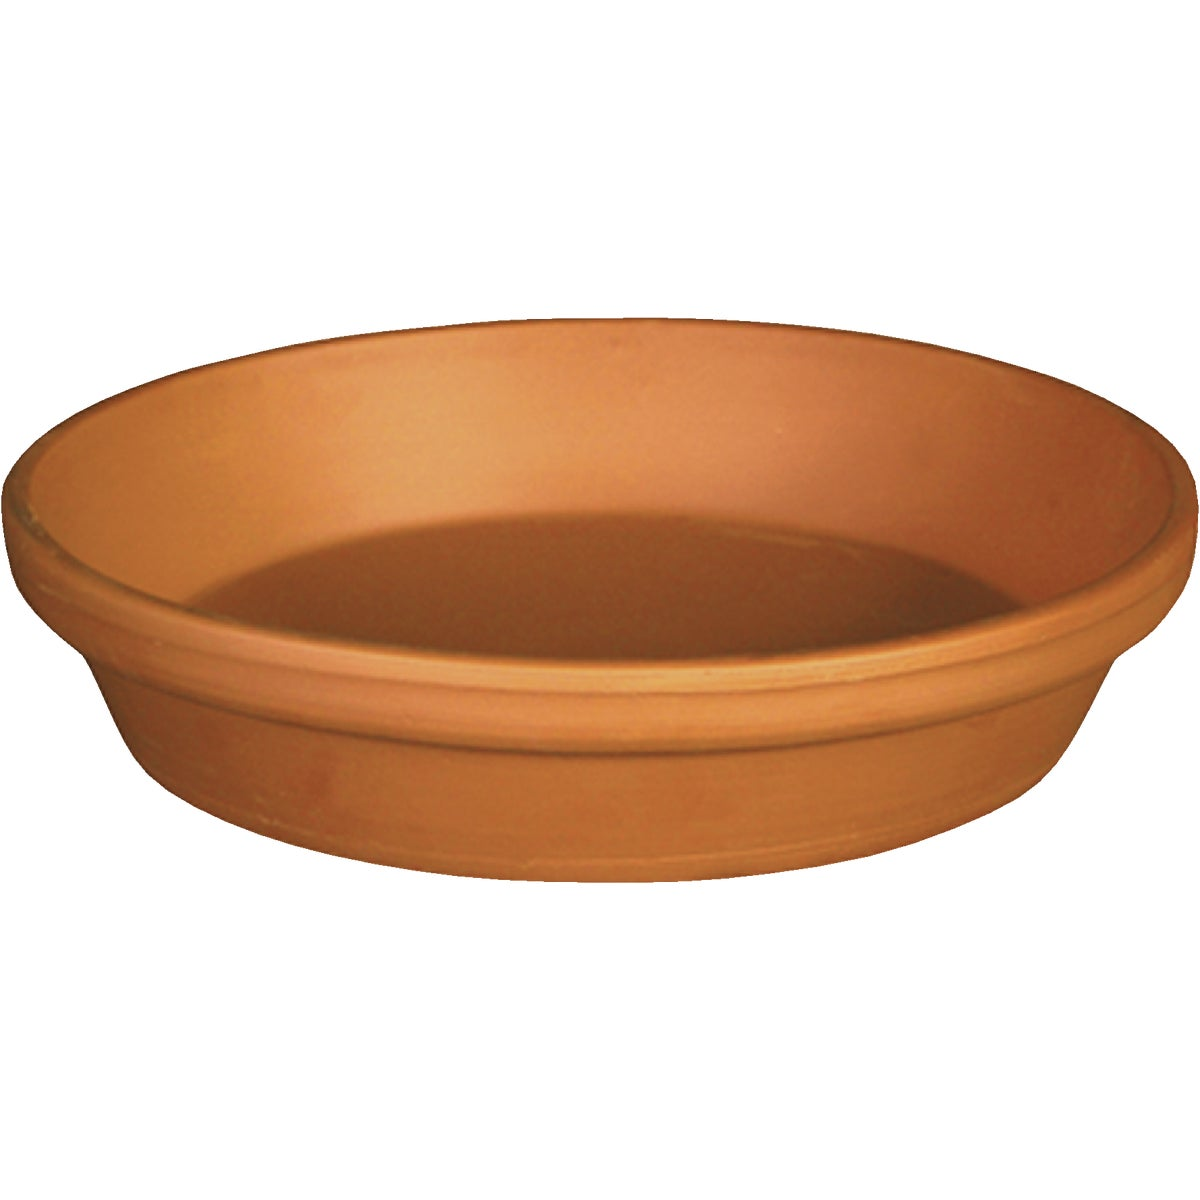 "6"" TC CLAY SAUCER - M8210PZ by Deroma"